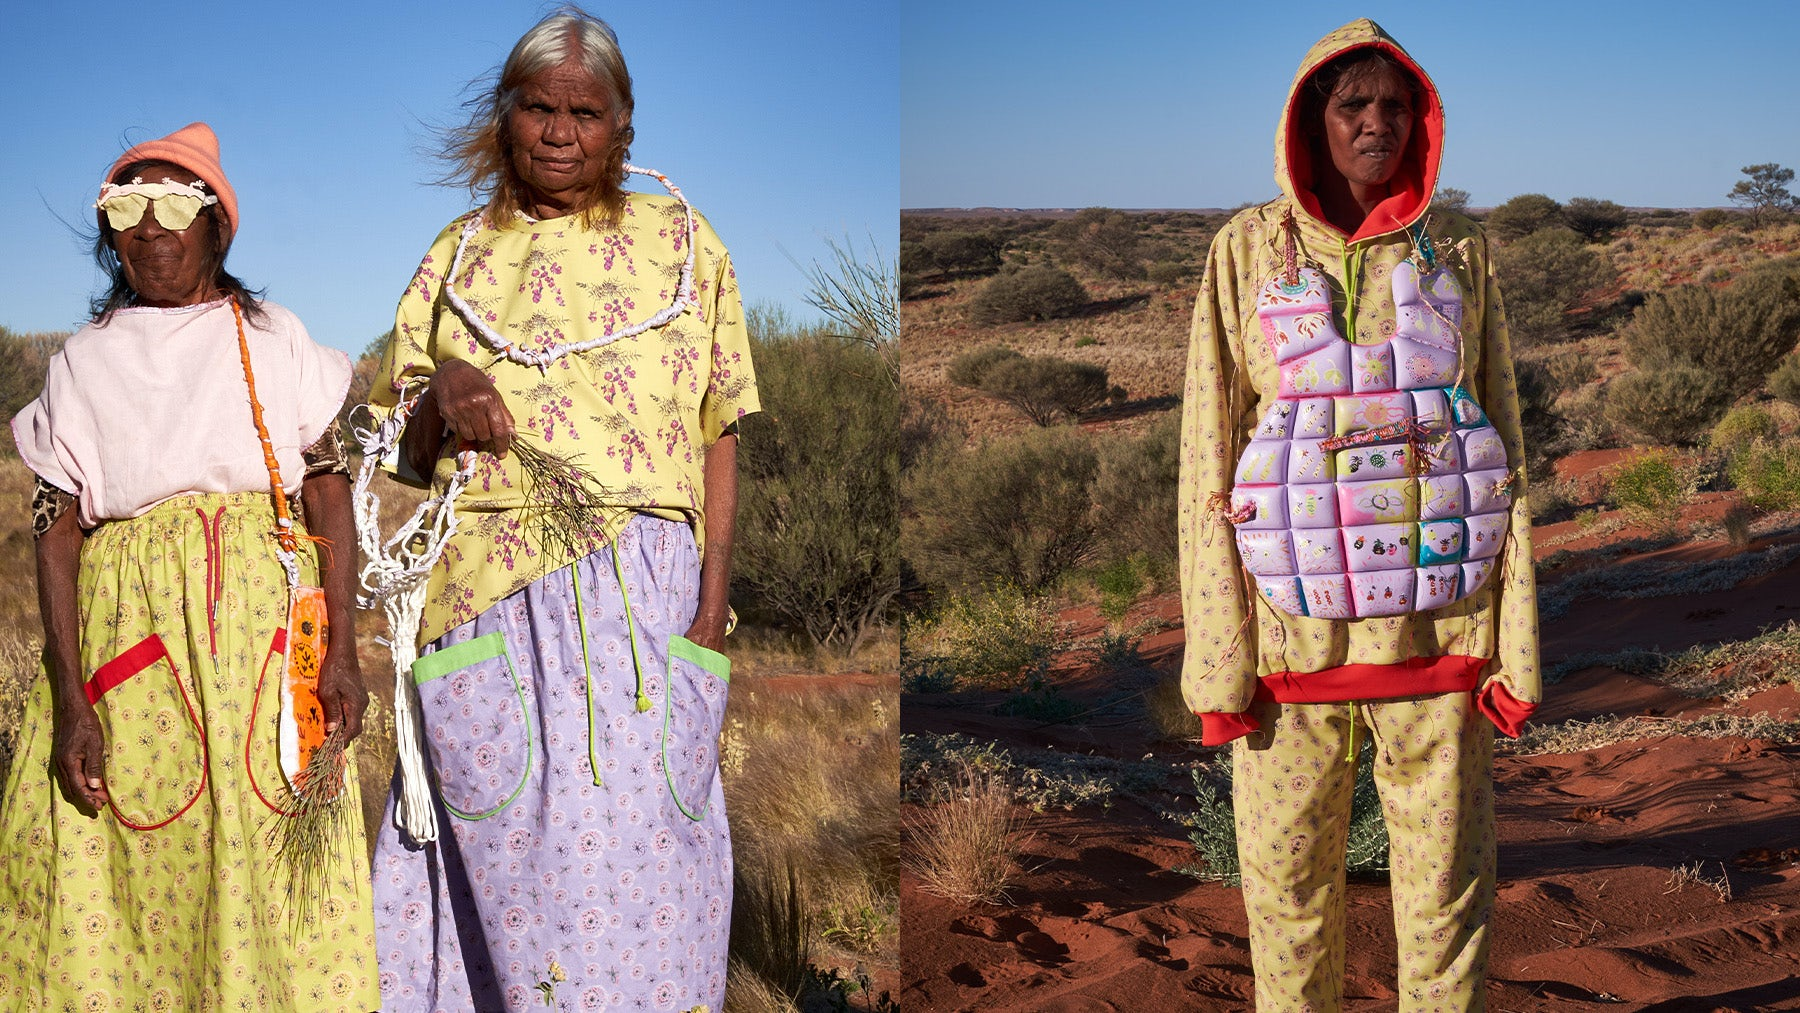 Kay Finn and Audrey Stewart wearing designs by Dunjiba Community Artists supported by Ku Arts; Melissa Stewart wearing designs by Dunjiba Community Artists supported by Ku Arts. Melanie Henderson.